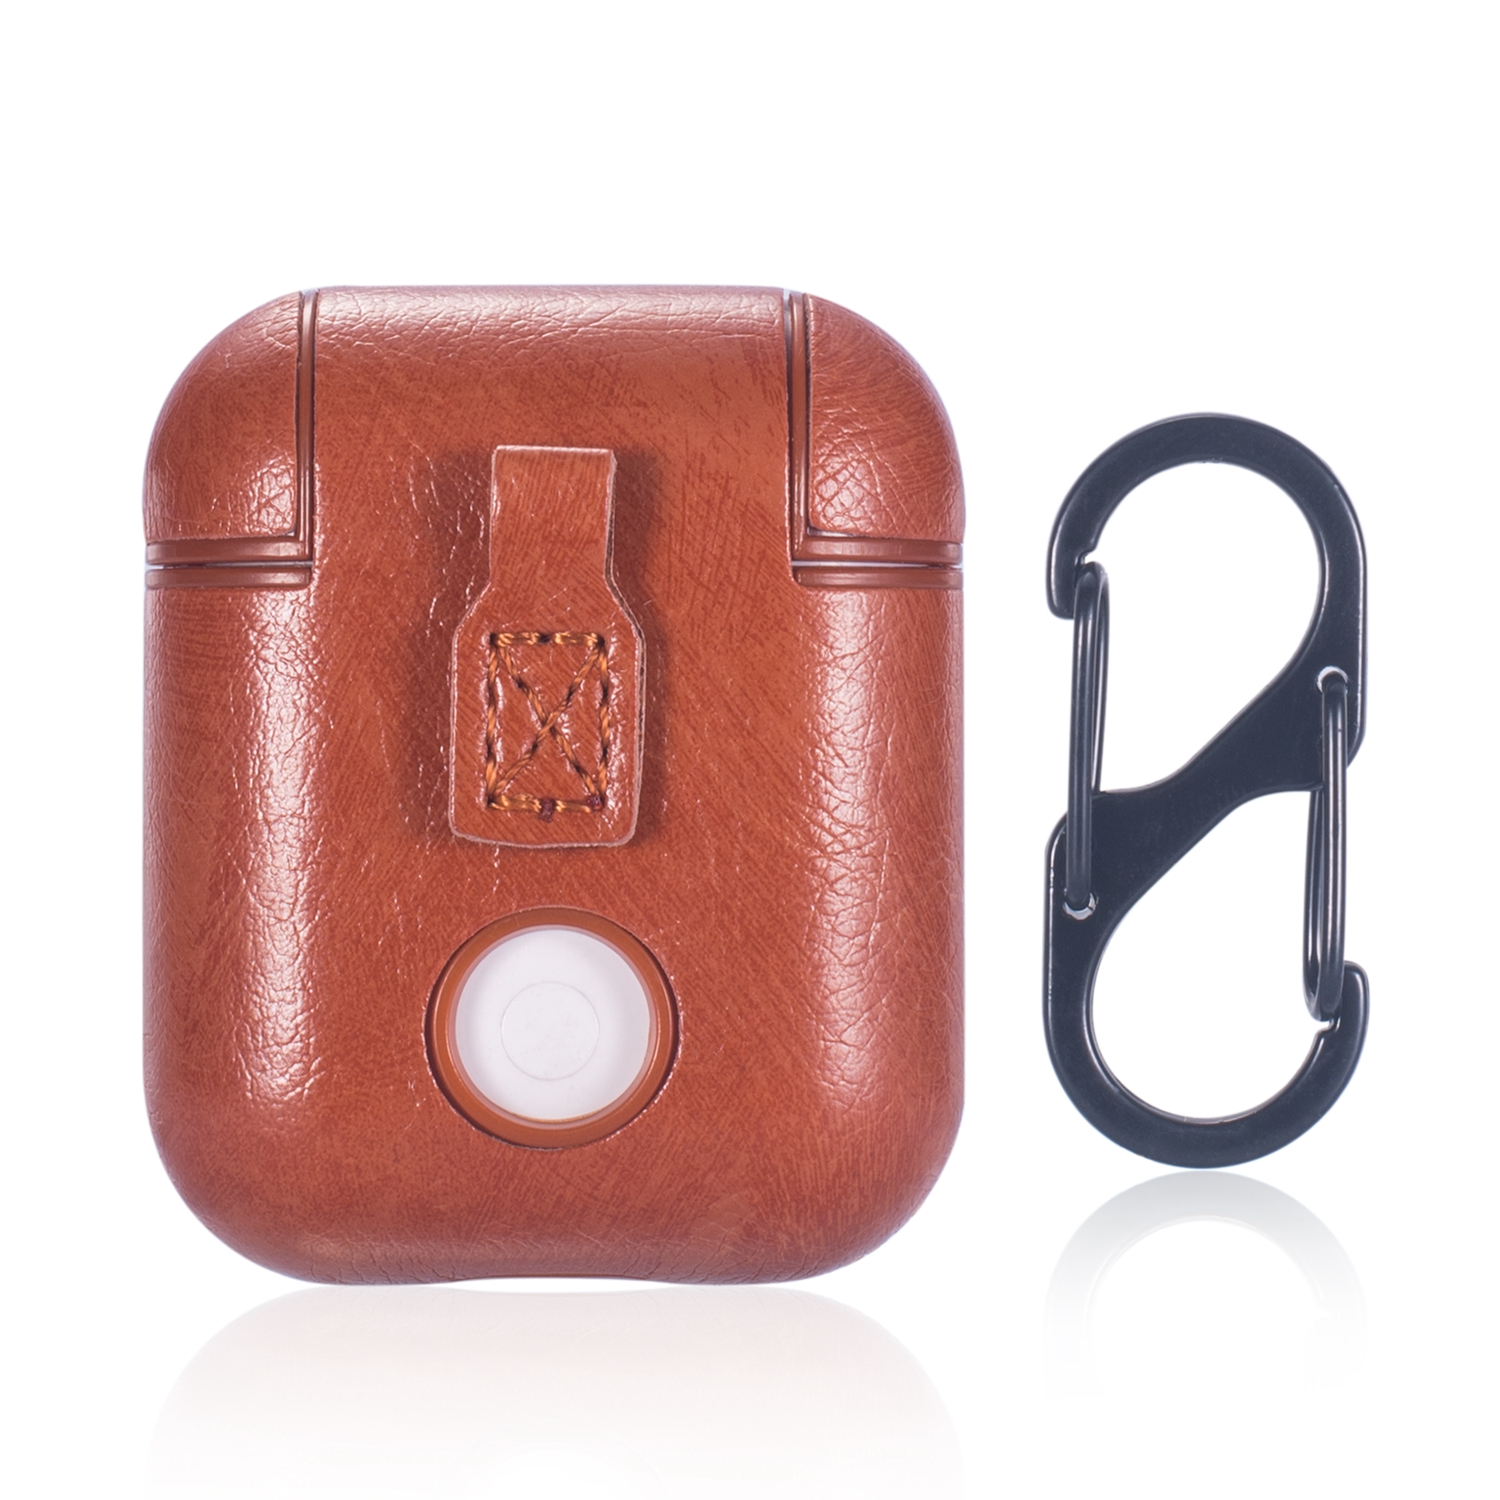 Allytech Airpods 1 2 Case With Keychain Pu Leather Portable